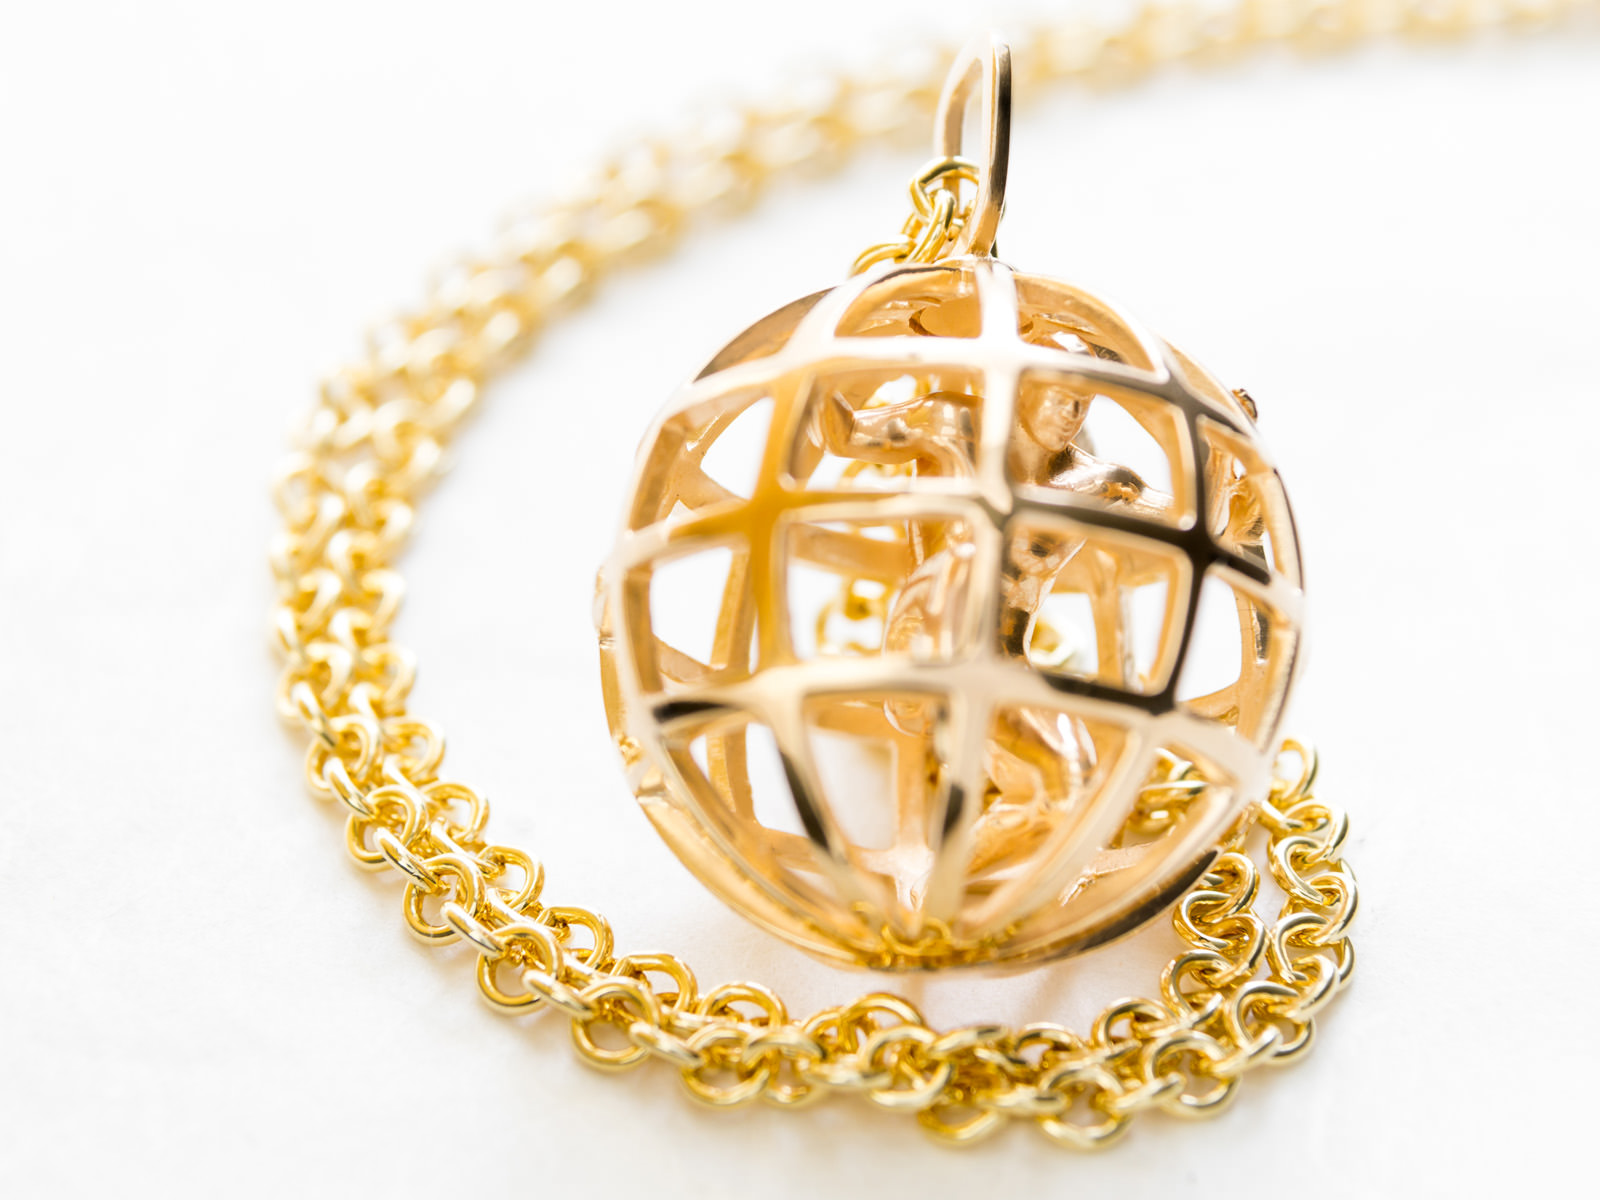 The gold Atlas pendant where a man is enclosed inside a cage-like ball